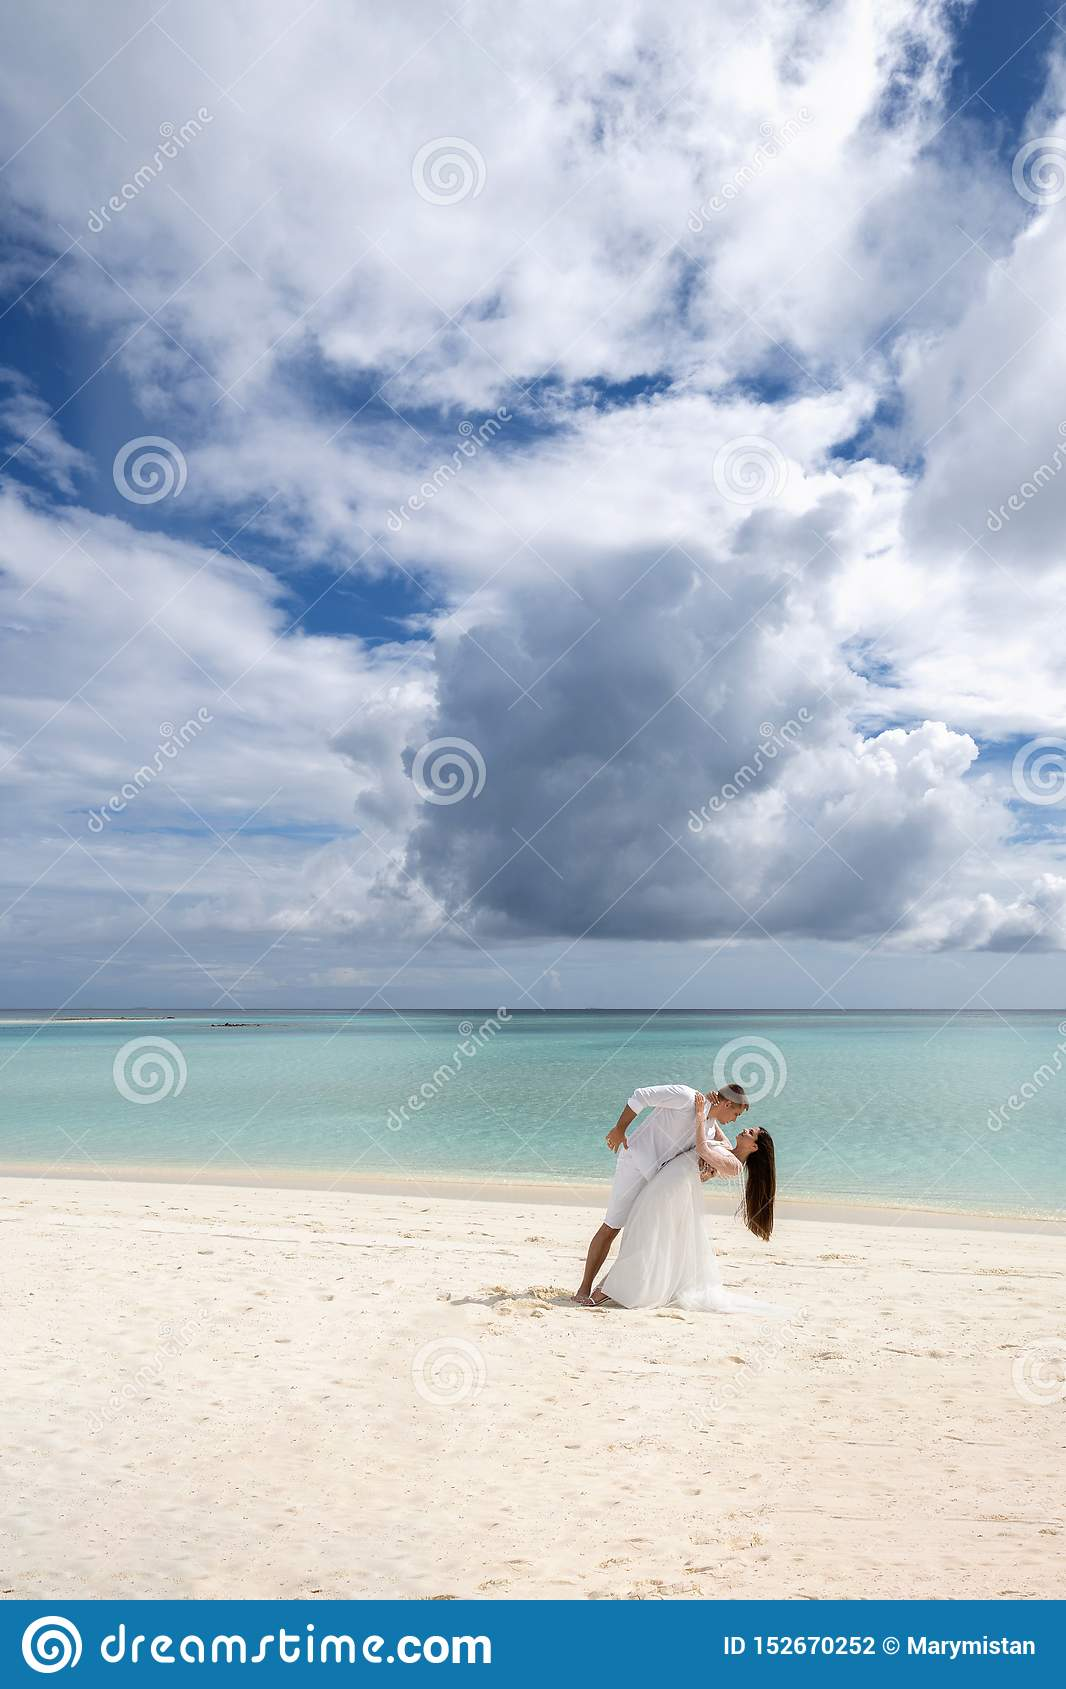 Newlyweds are passionately dancing on a gorgeous beach with white sand and turquoise water